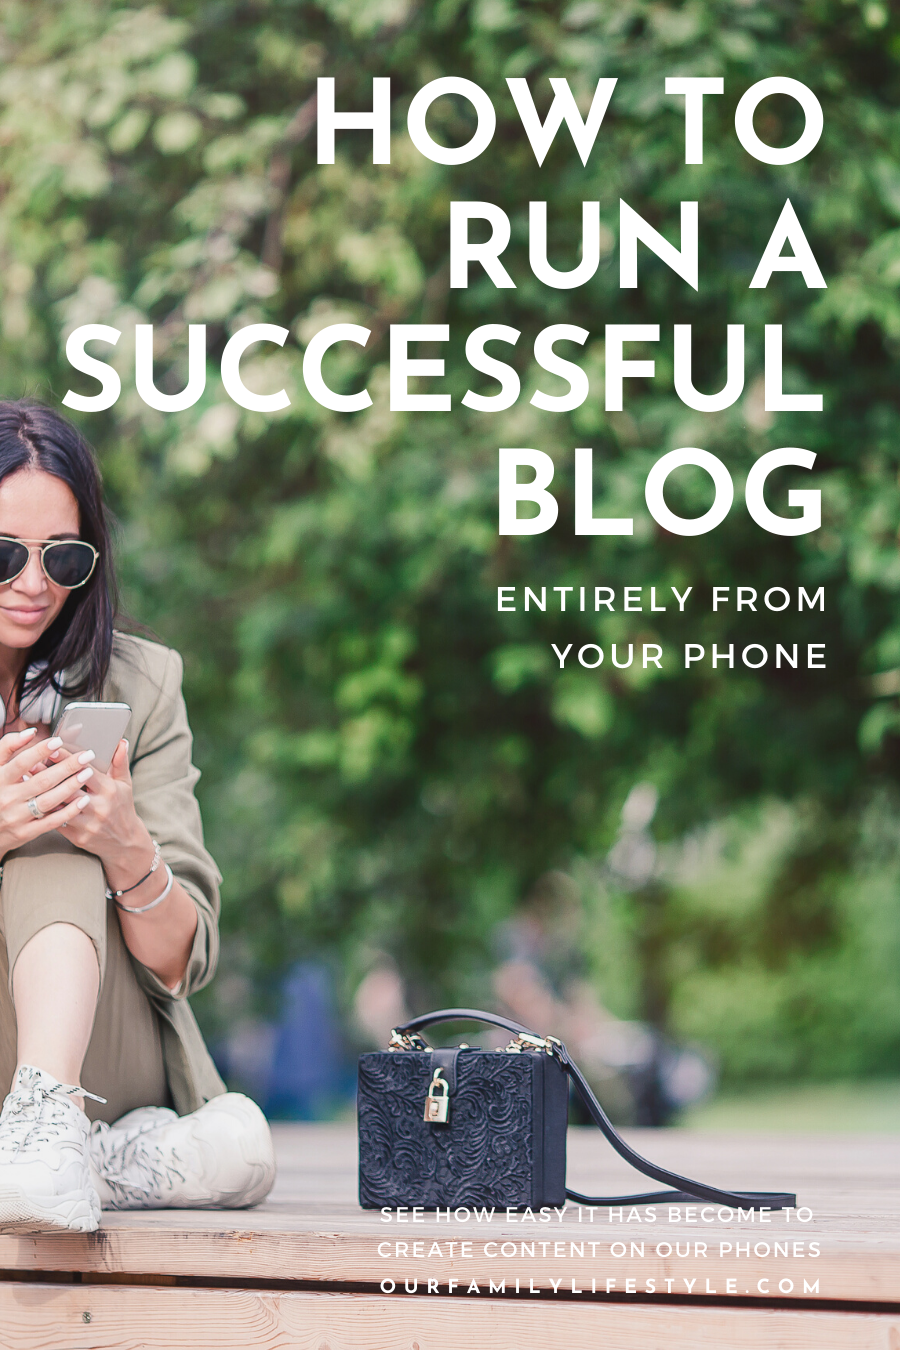 How To Run A Successful Blog Entirely From Your Phone